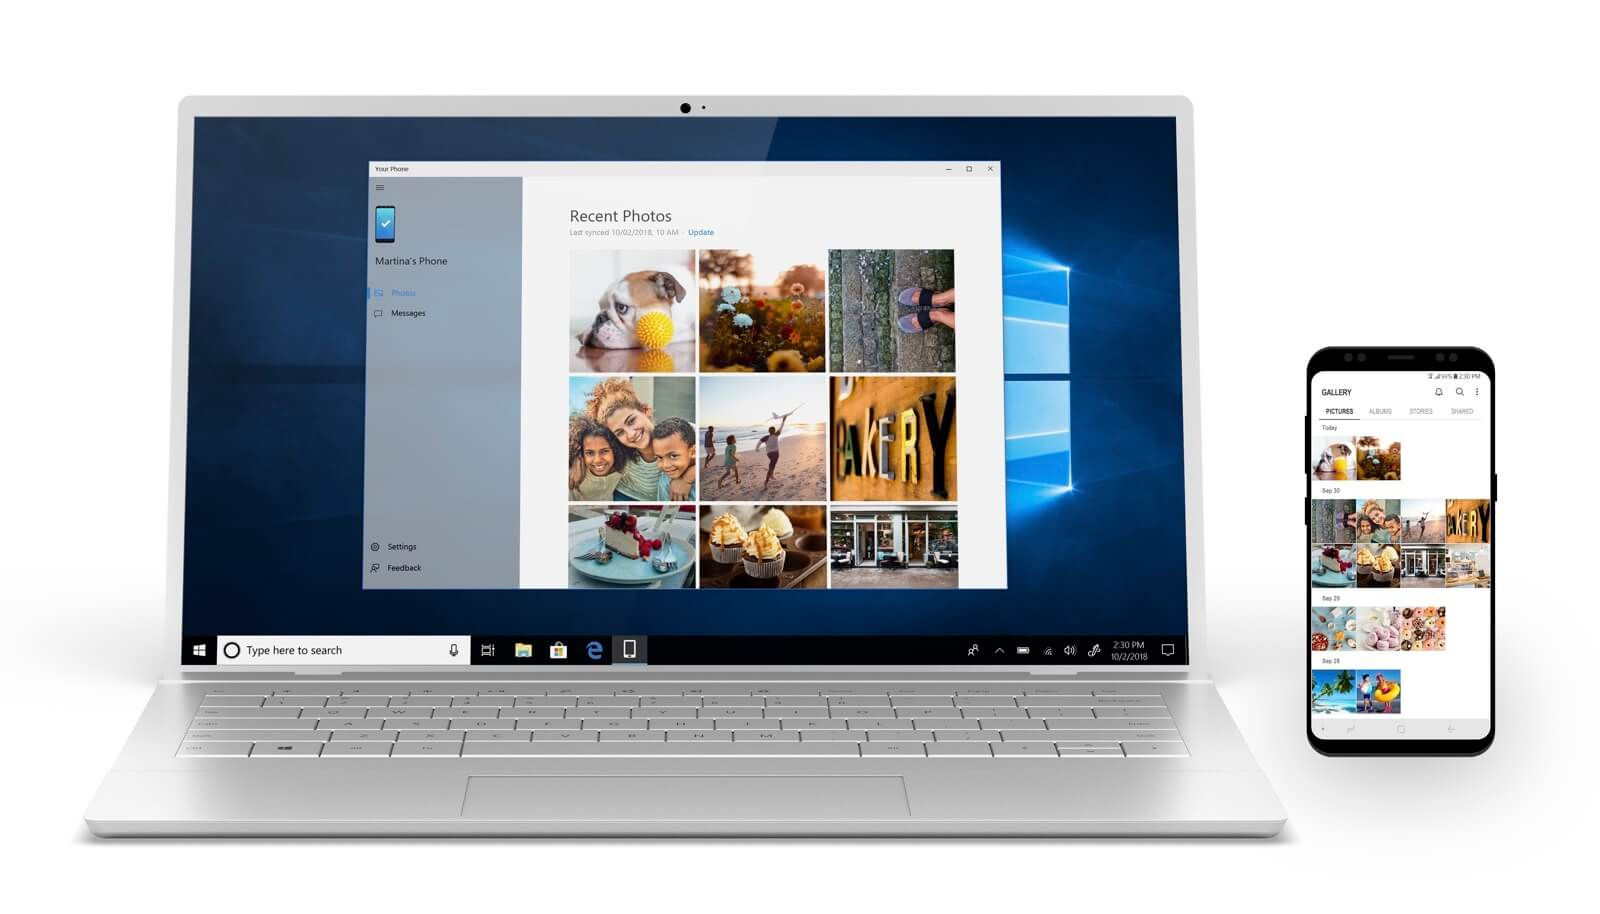 windows 10 your phone features